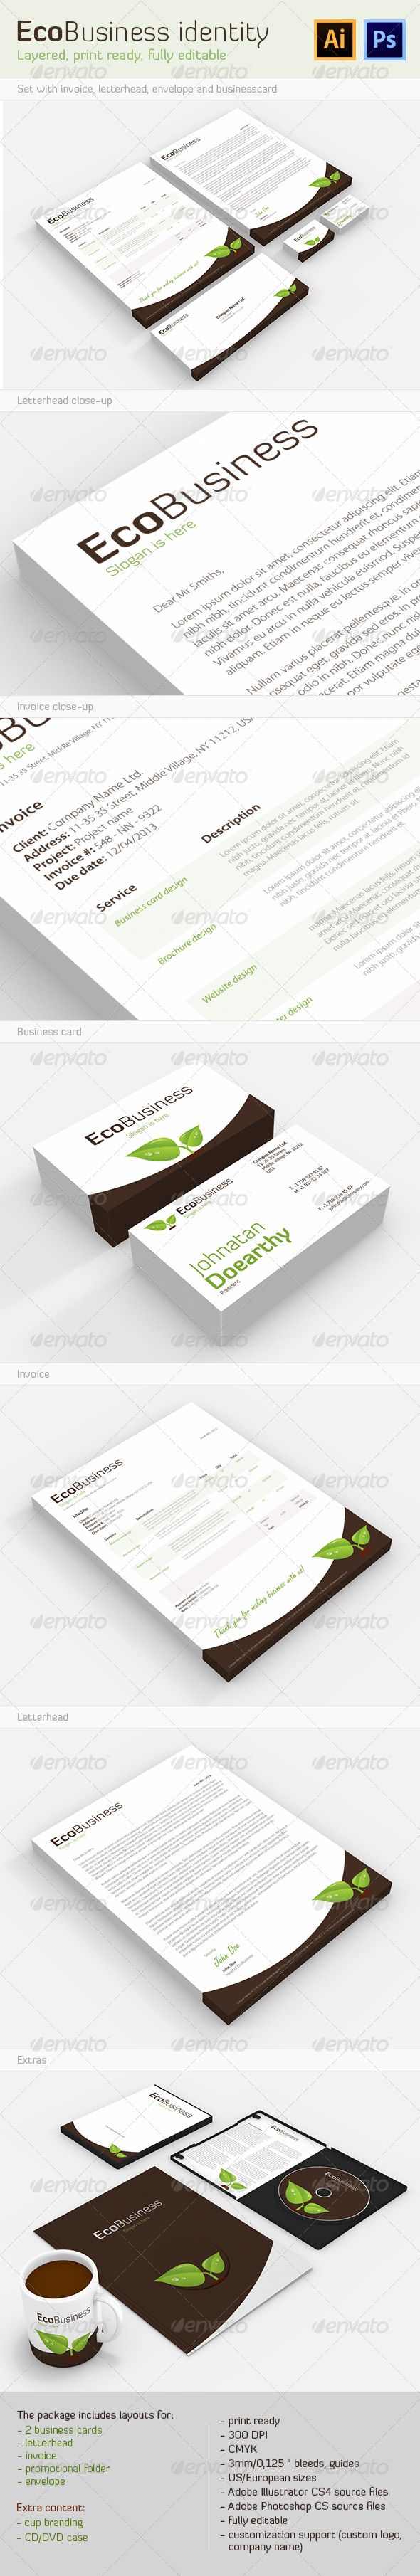 GraphicRiver EcoBusiness Corporate Identity 4931802